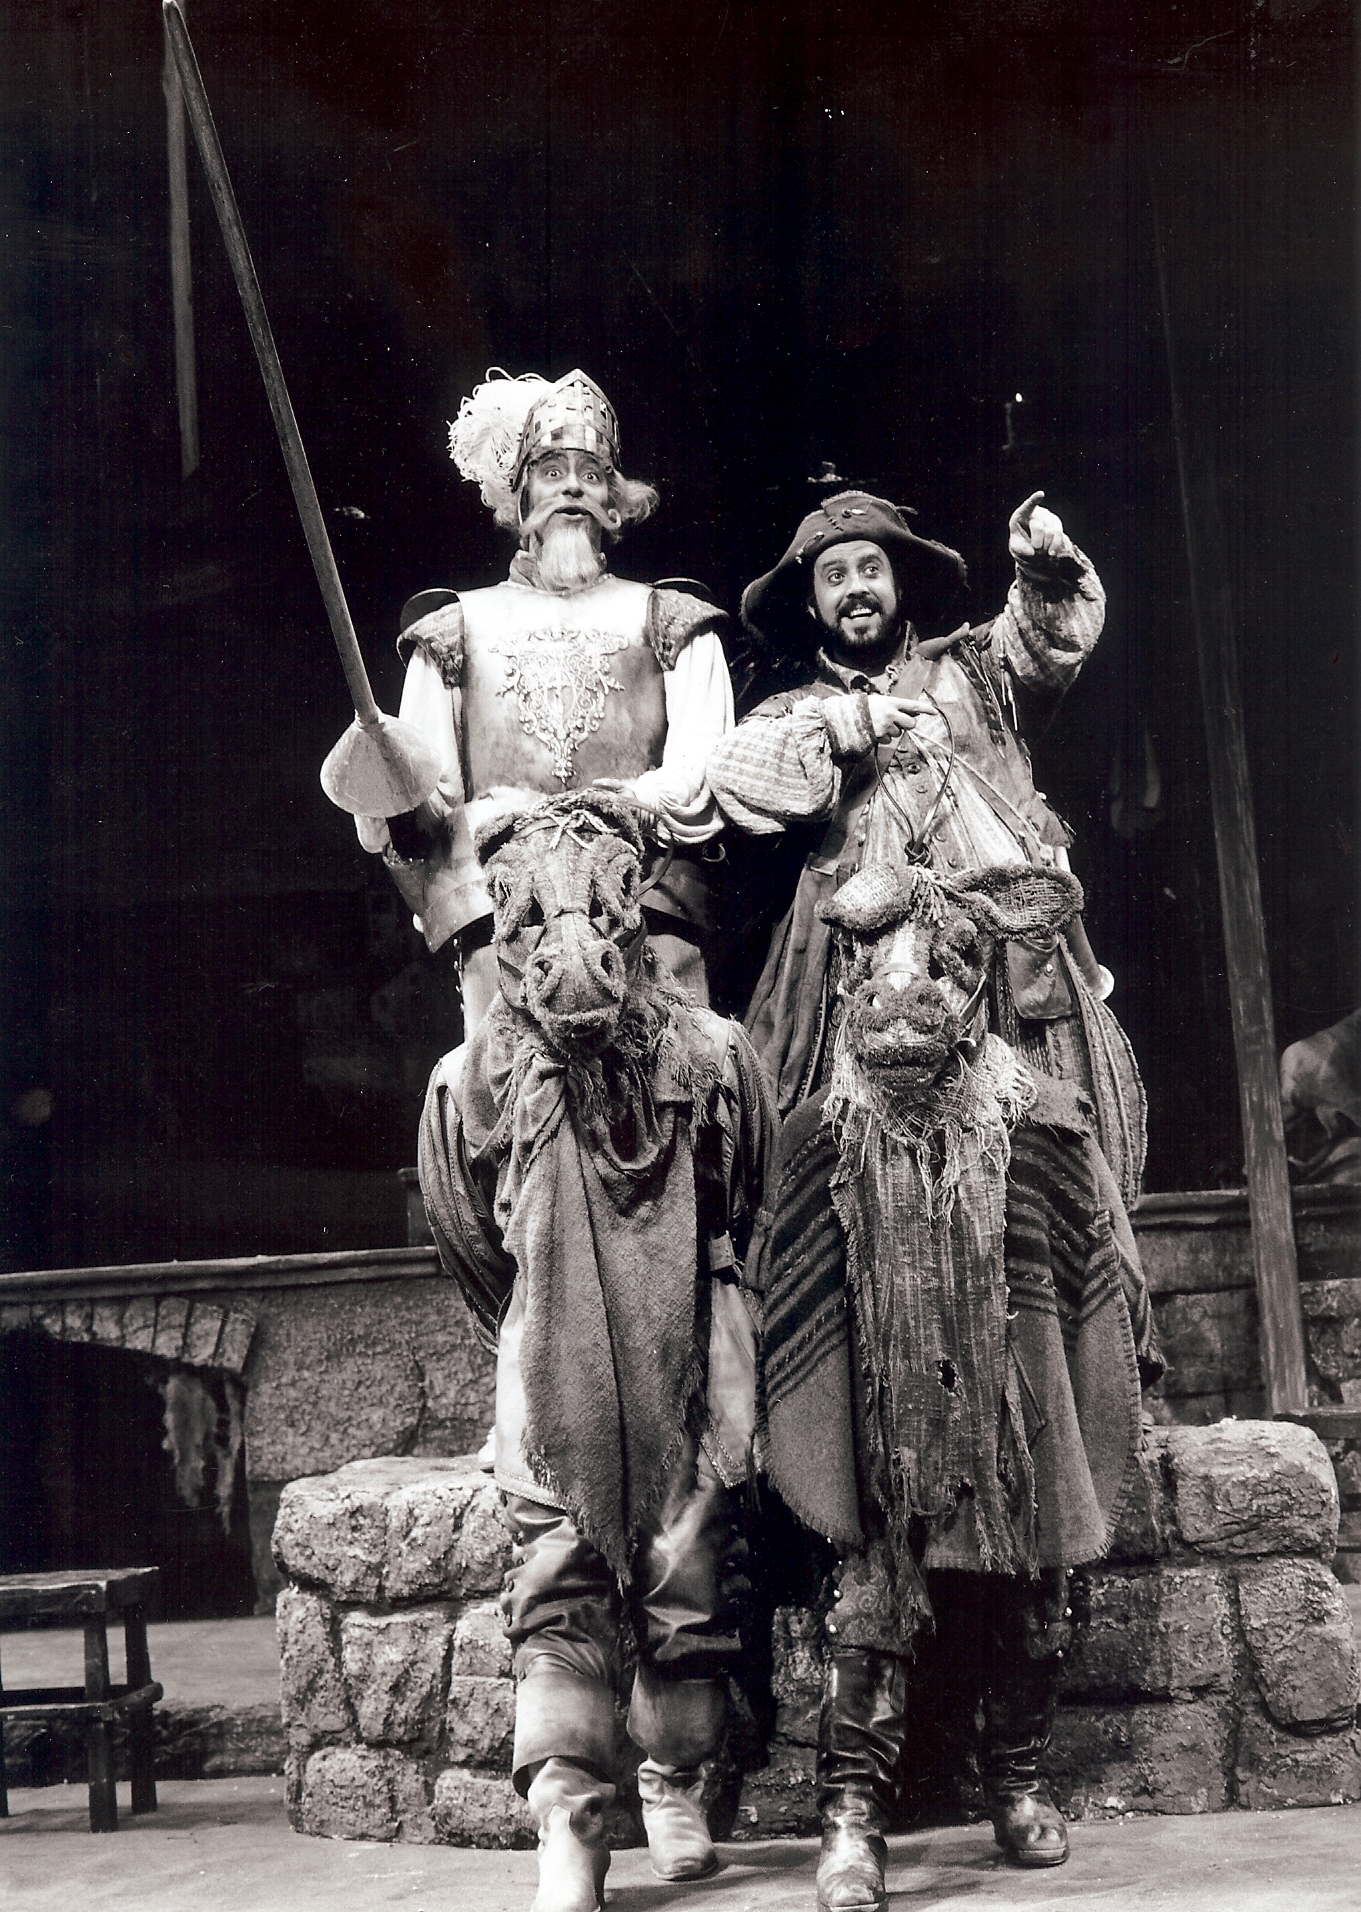 Don Quixote in Man of La Mancha